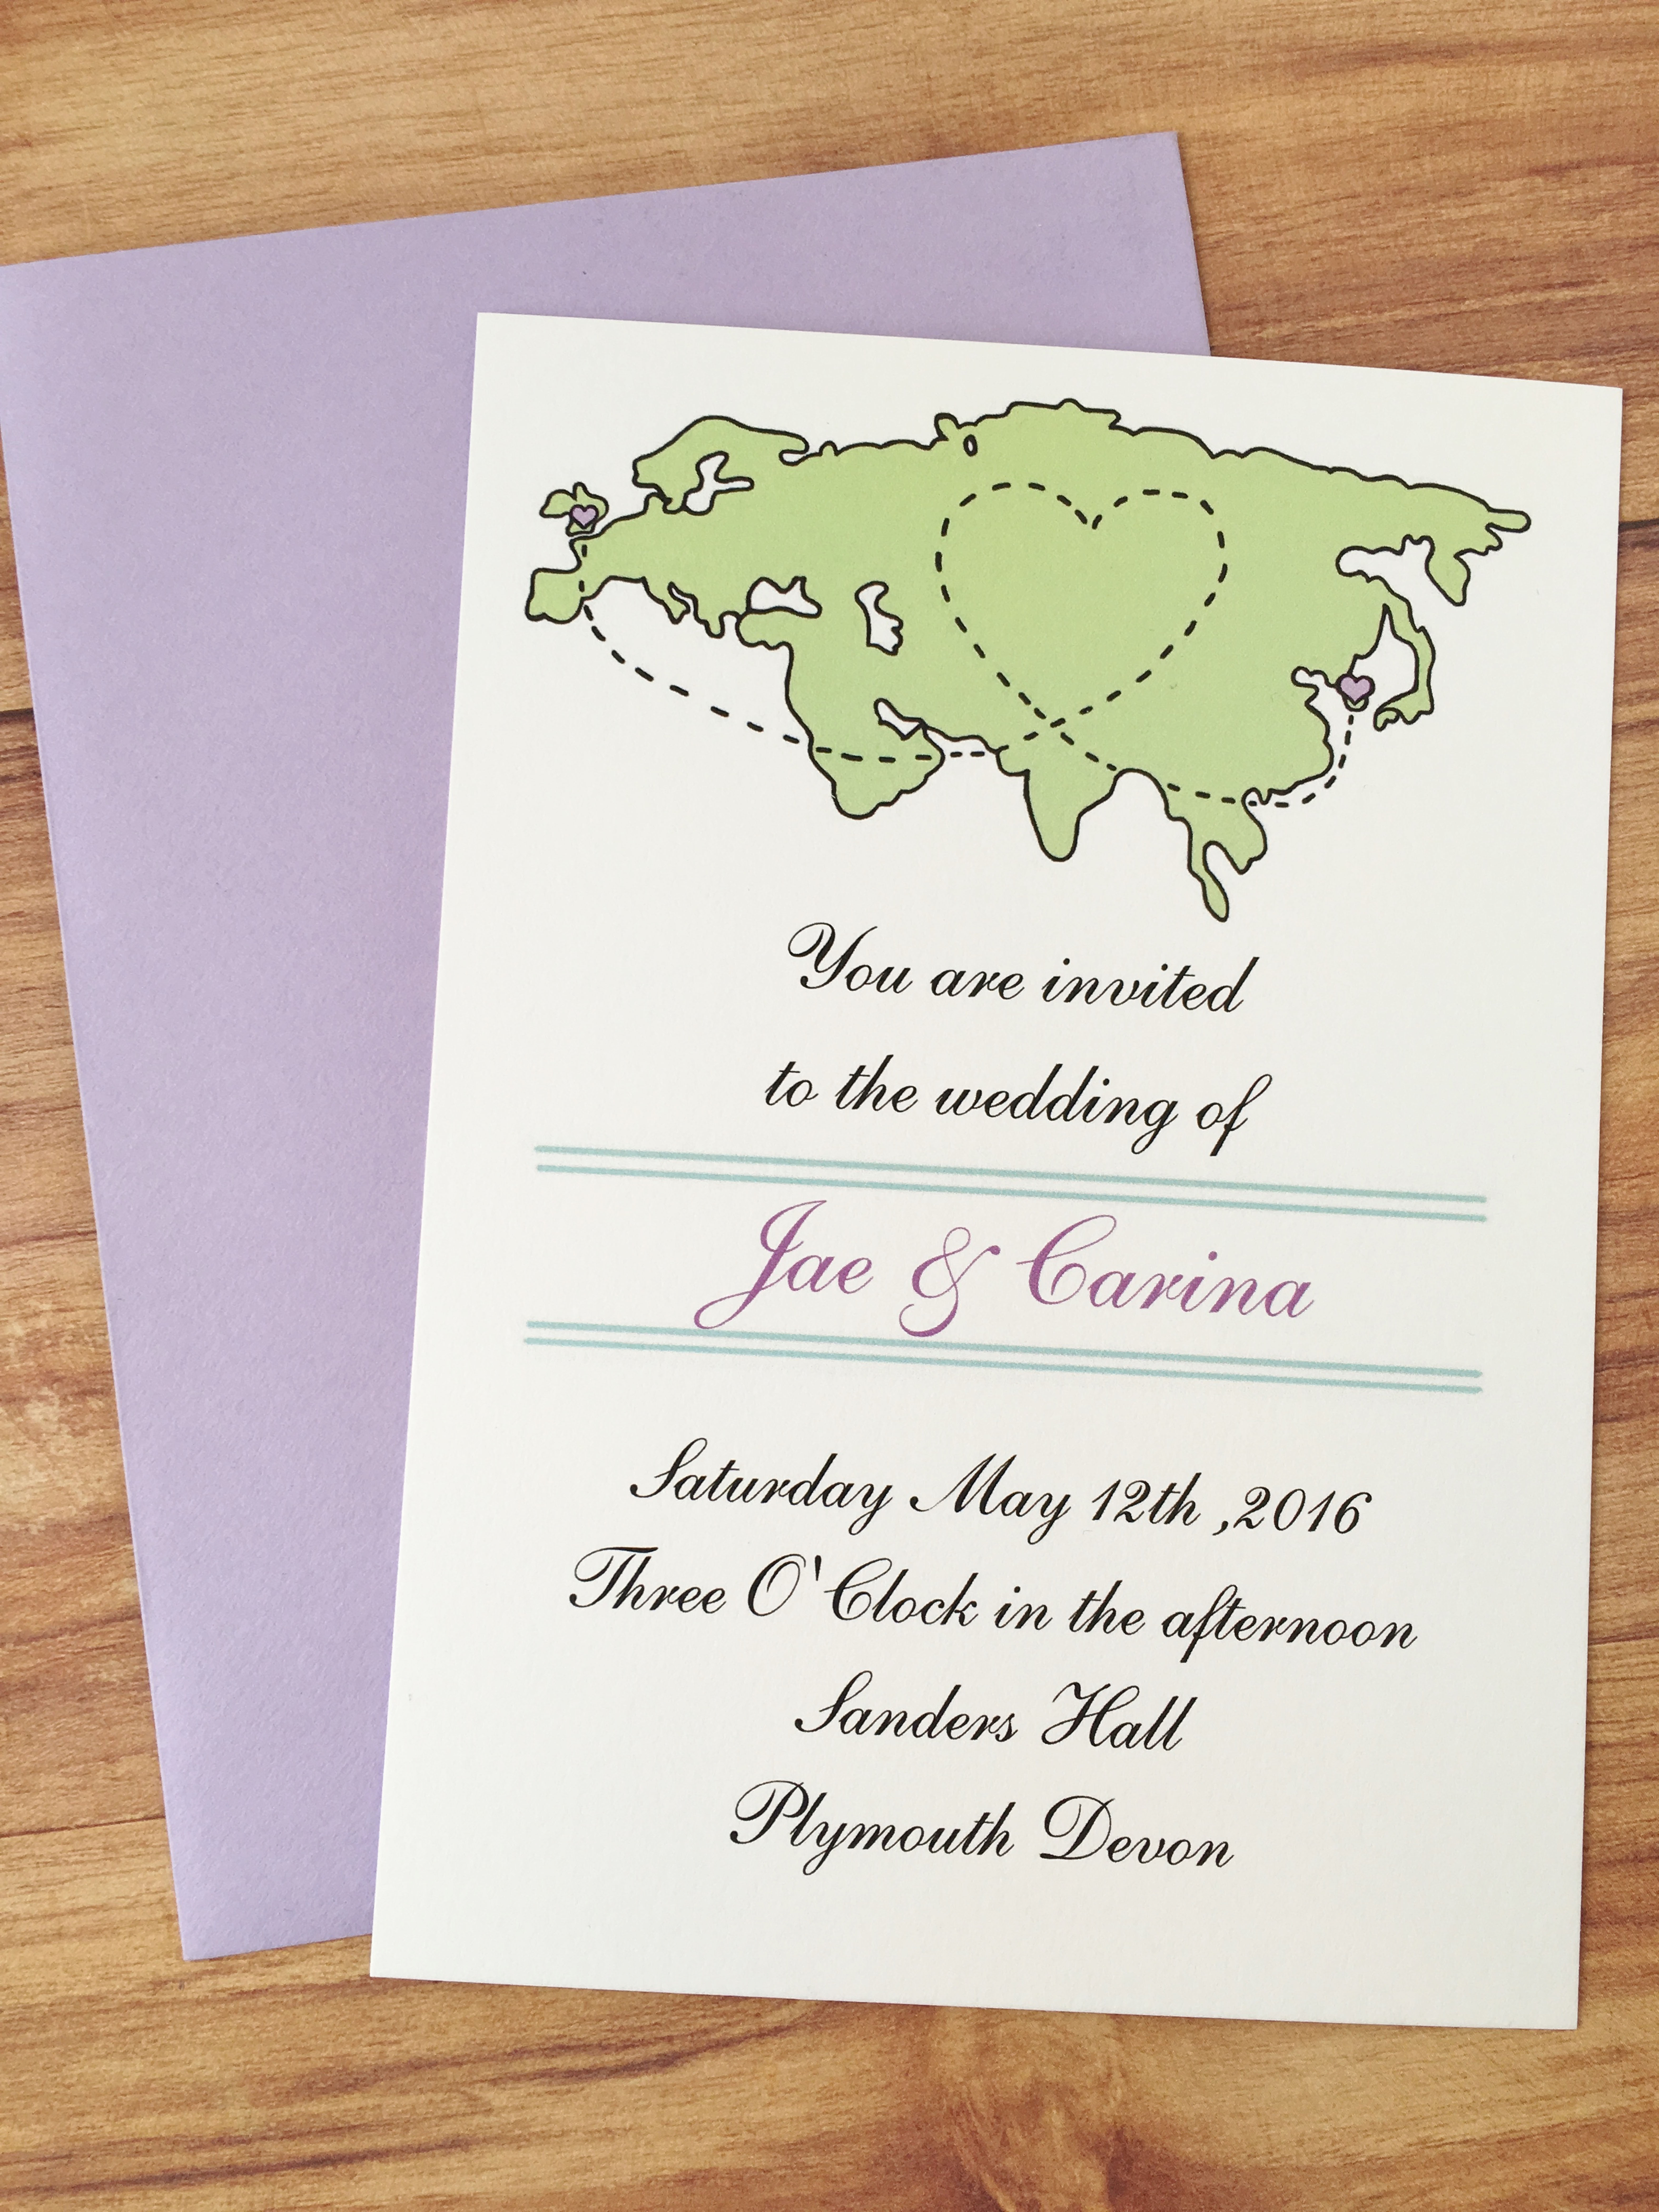 Long distance wedding invitations by Fancy Paperie | Bridestory.com